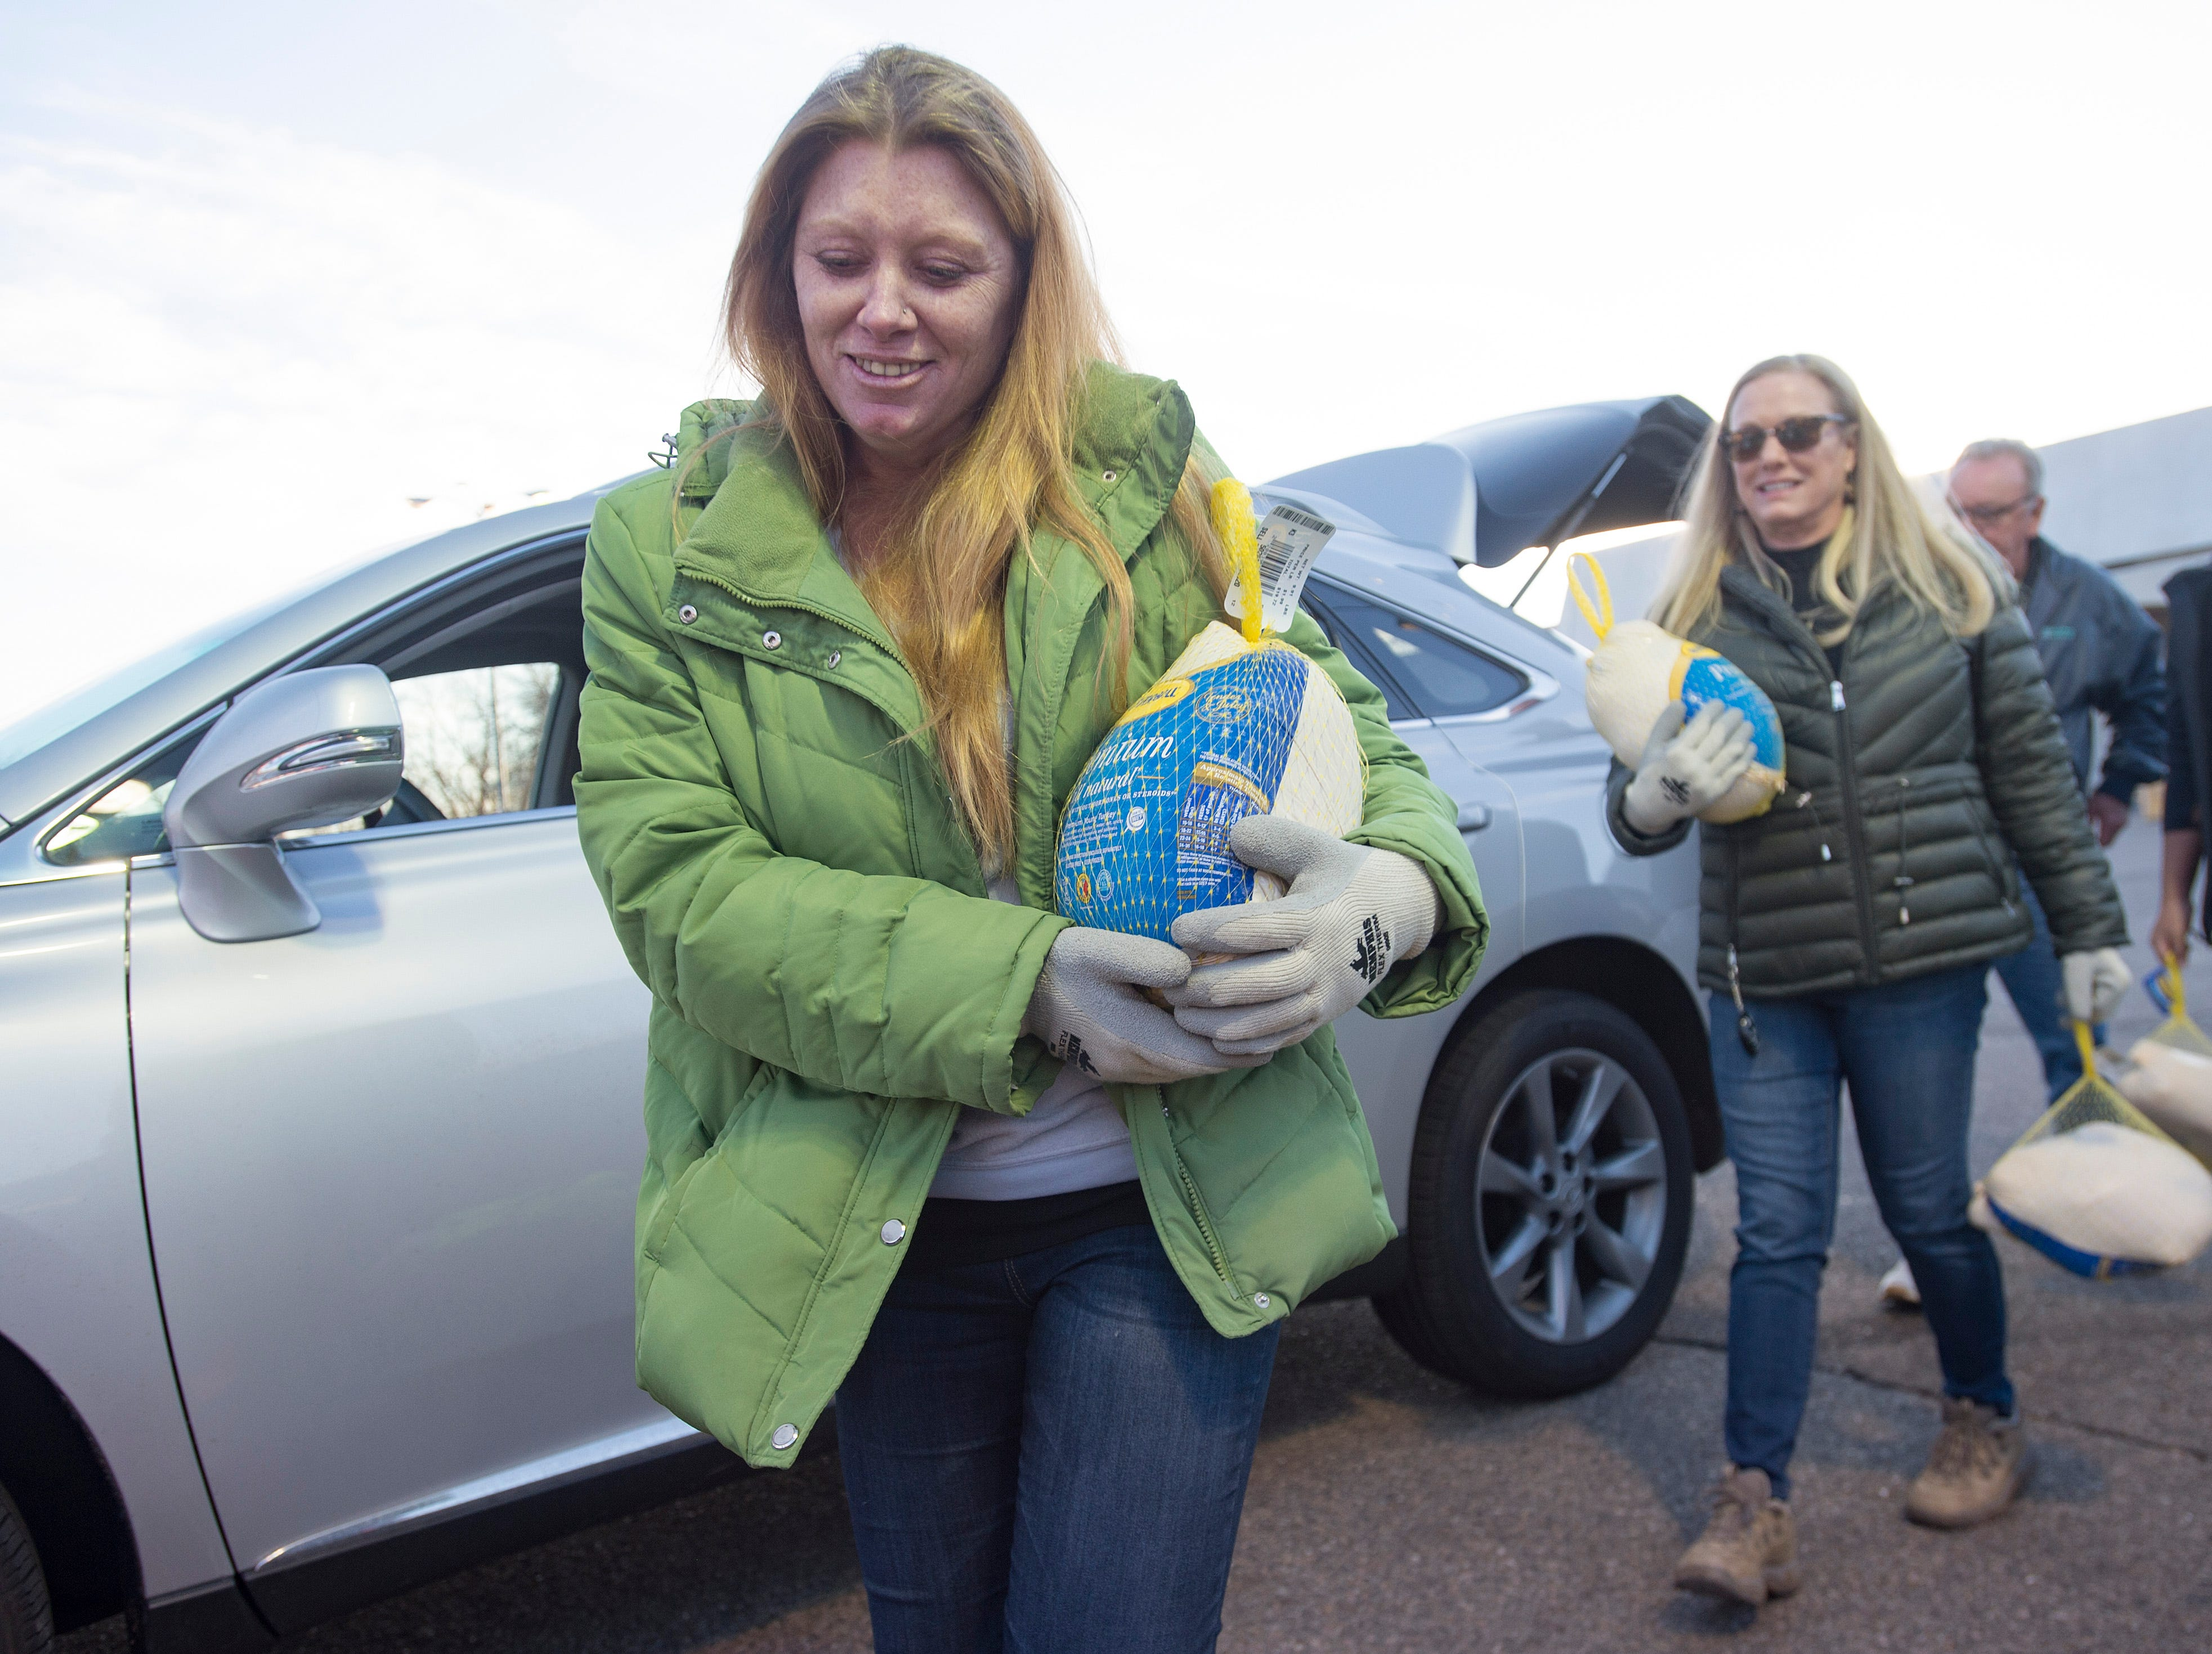 Volunteer Tori DuChateau, left, carries a donated turkey as people drop off turkeys for Thanksgiving during the Food Bank for Larimer County's Stuff The Truck Turkey Donation on Thursday, November 15, 2018.